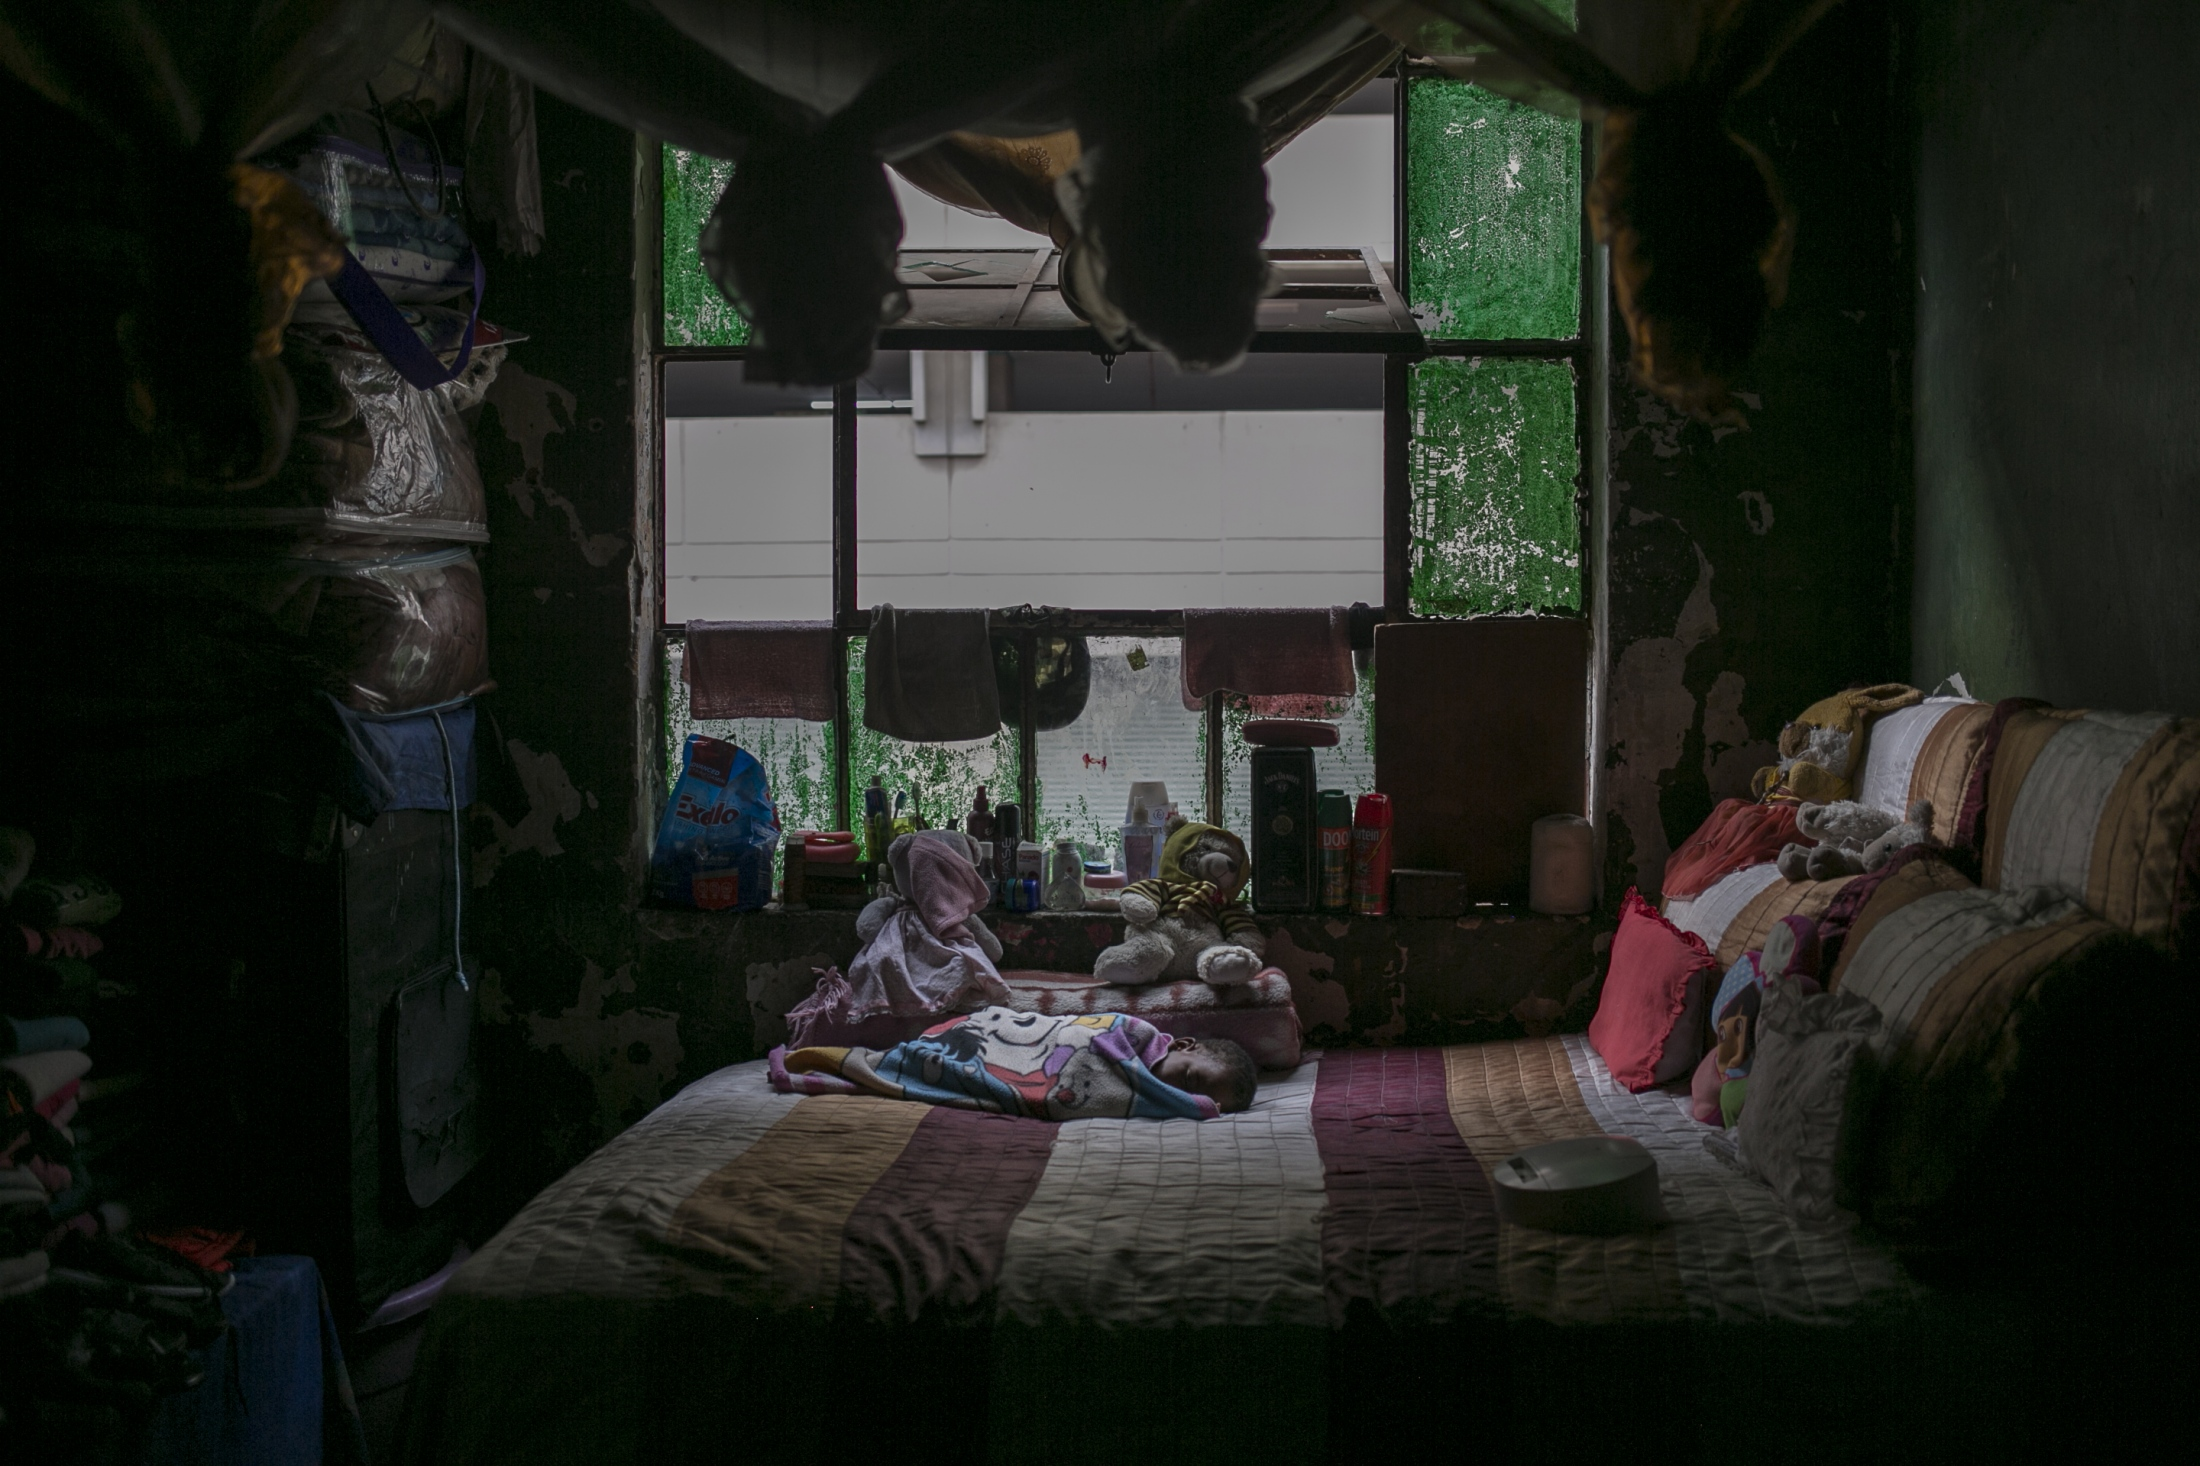 Two-year-old Makanake Angel sleeps on her mother's bed inside an abandoned building. March 30, 2018.